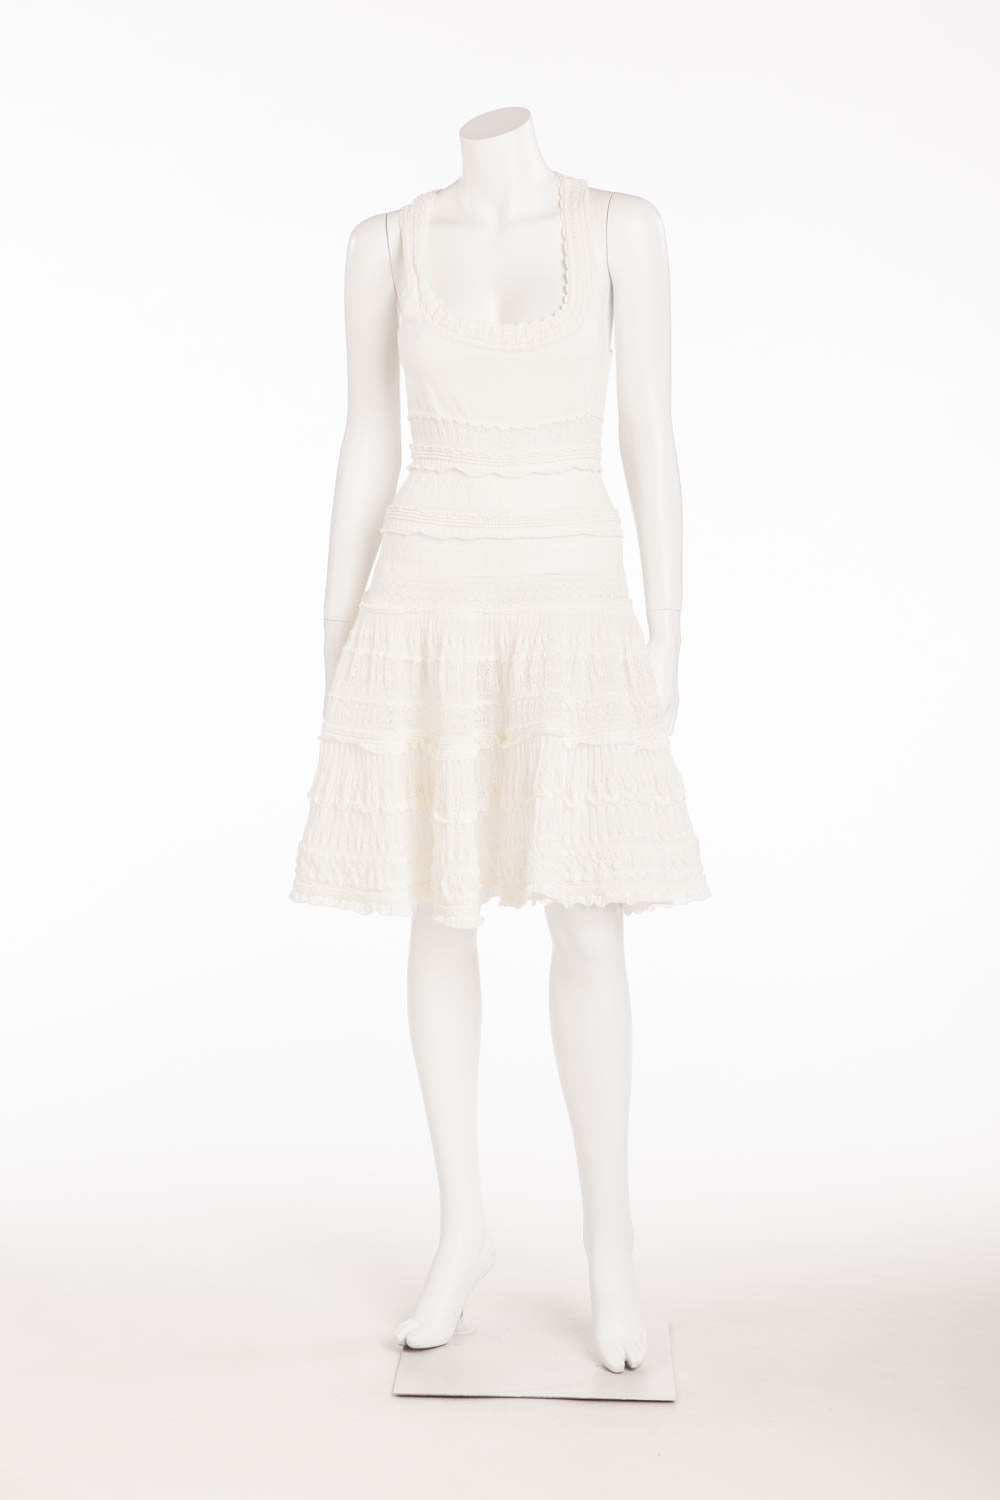 Alaia - White Short Cocktail Summer Dress - FR 38